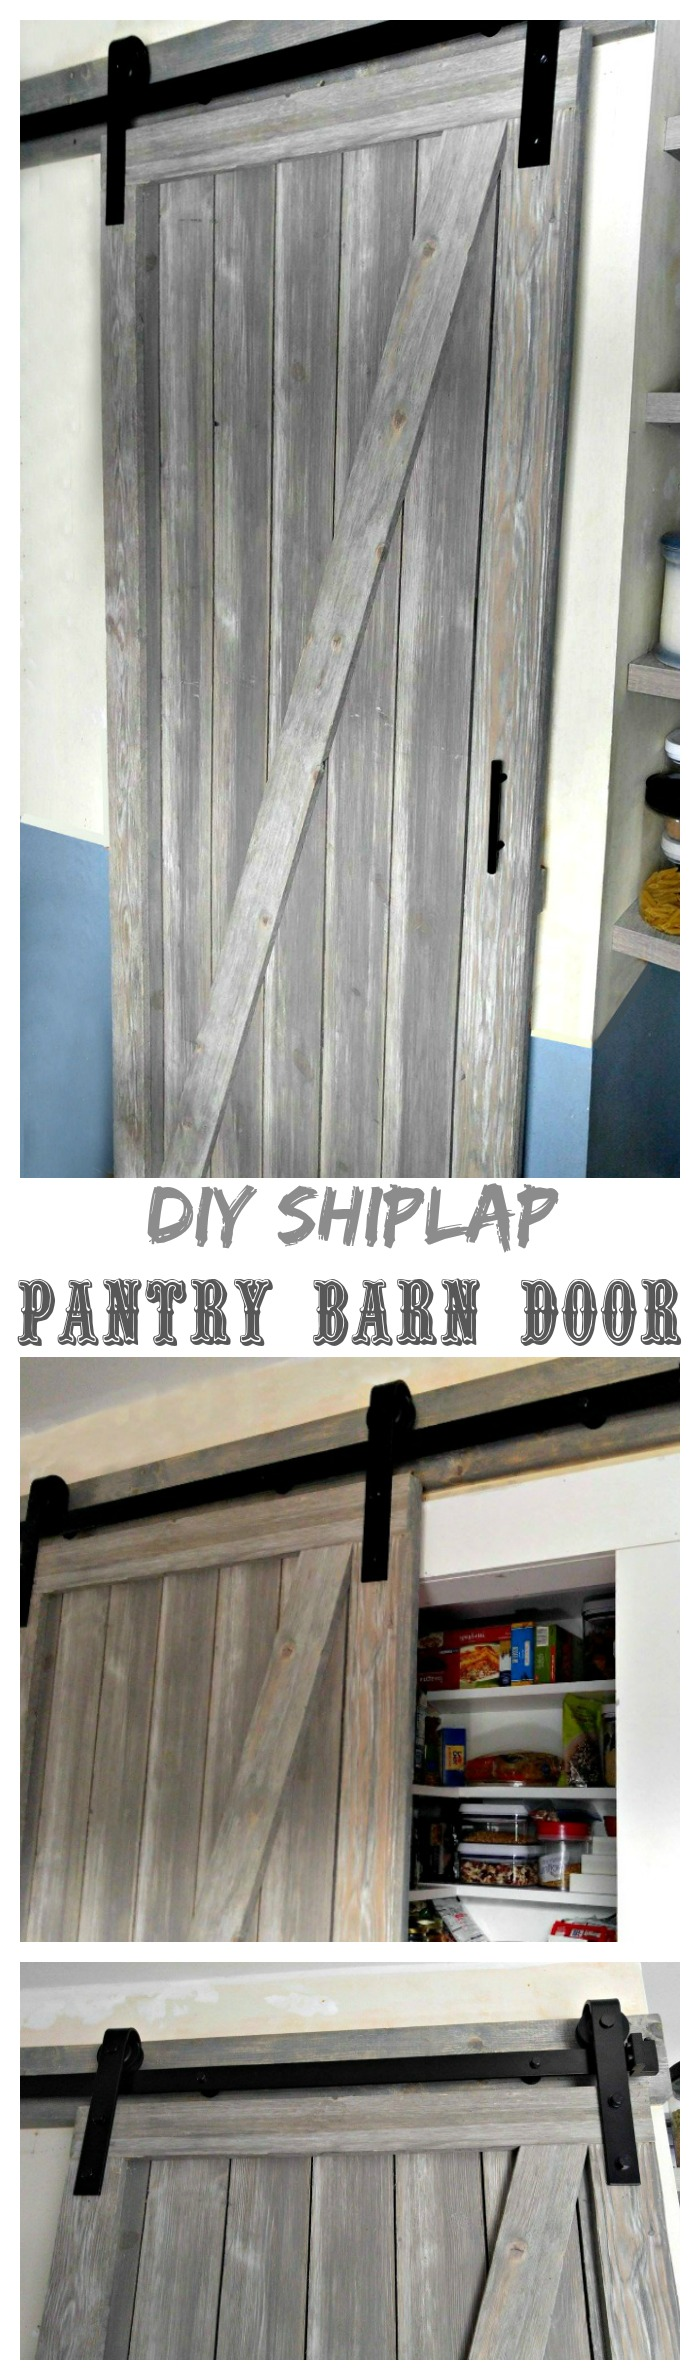 How To how to make a barn door images : Shiplap Barn Door - How to Make a Sliding Barn Door